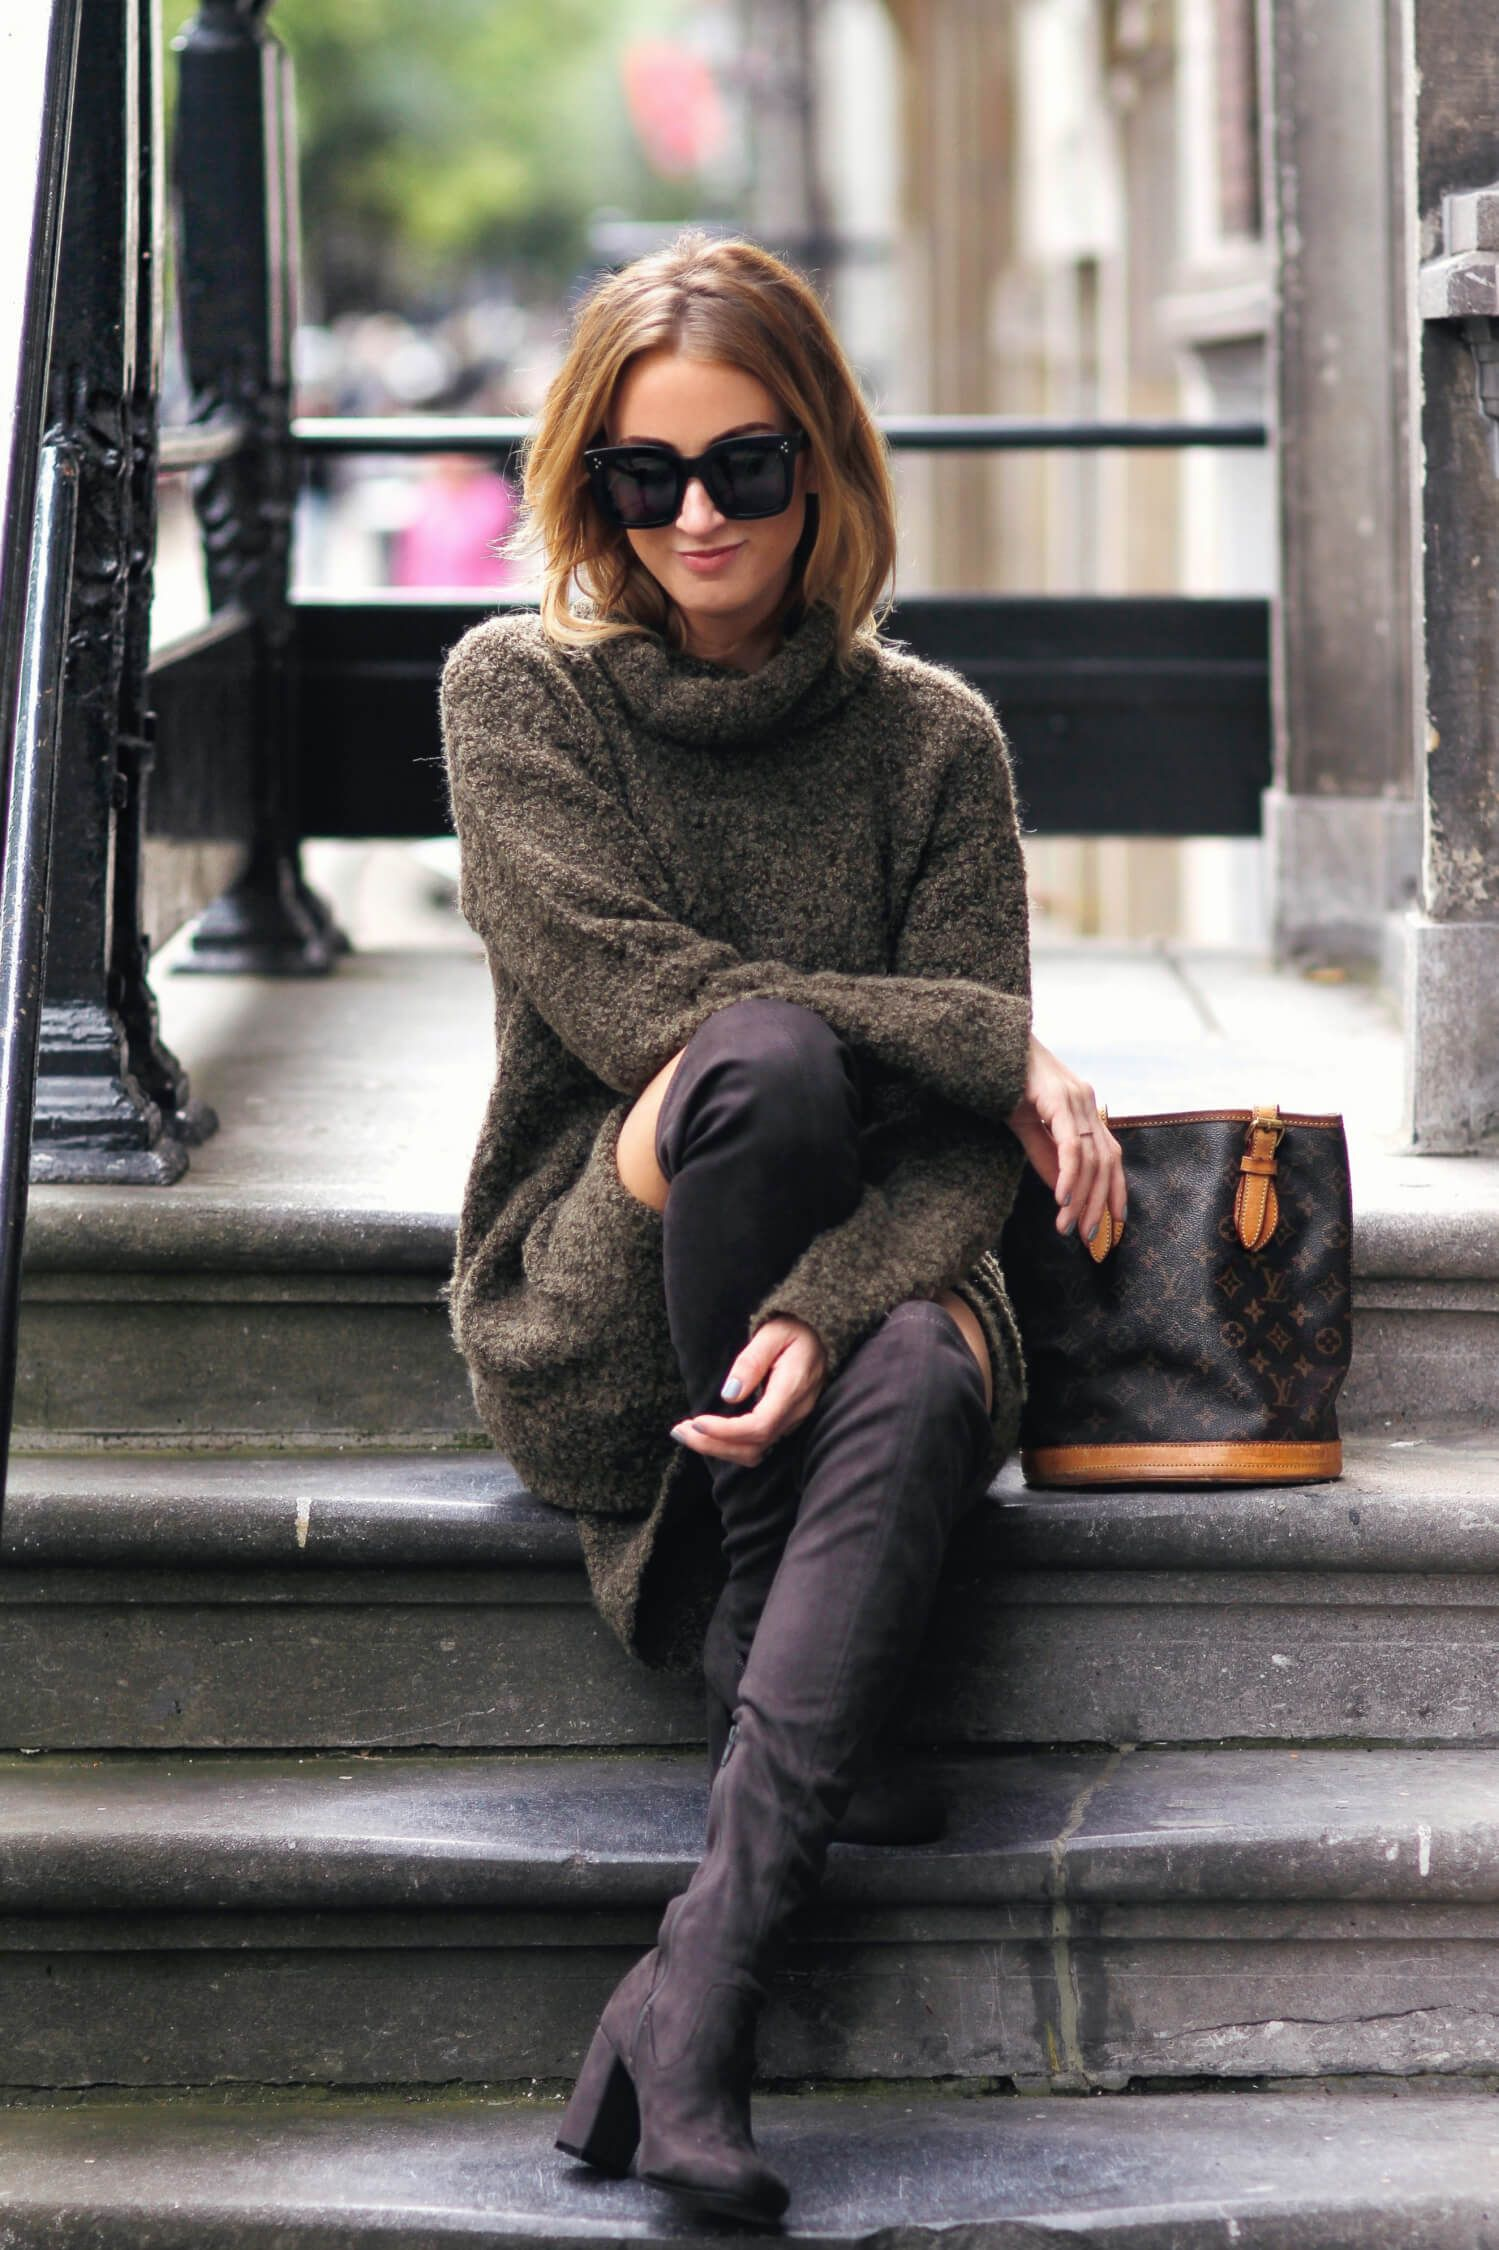 Queen Of Jet Lags Over The Knee Boots Fashion Fashion Blogger